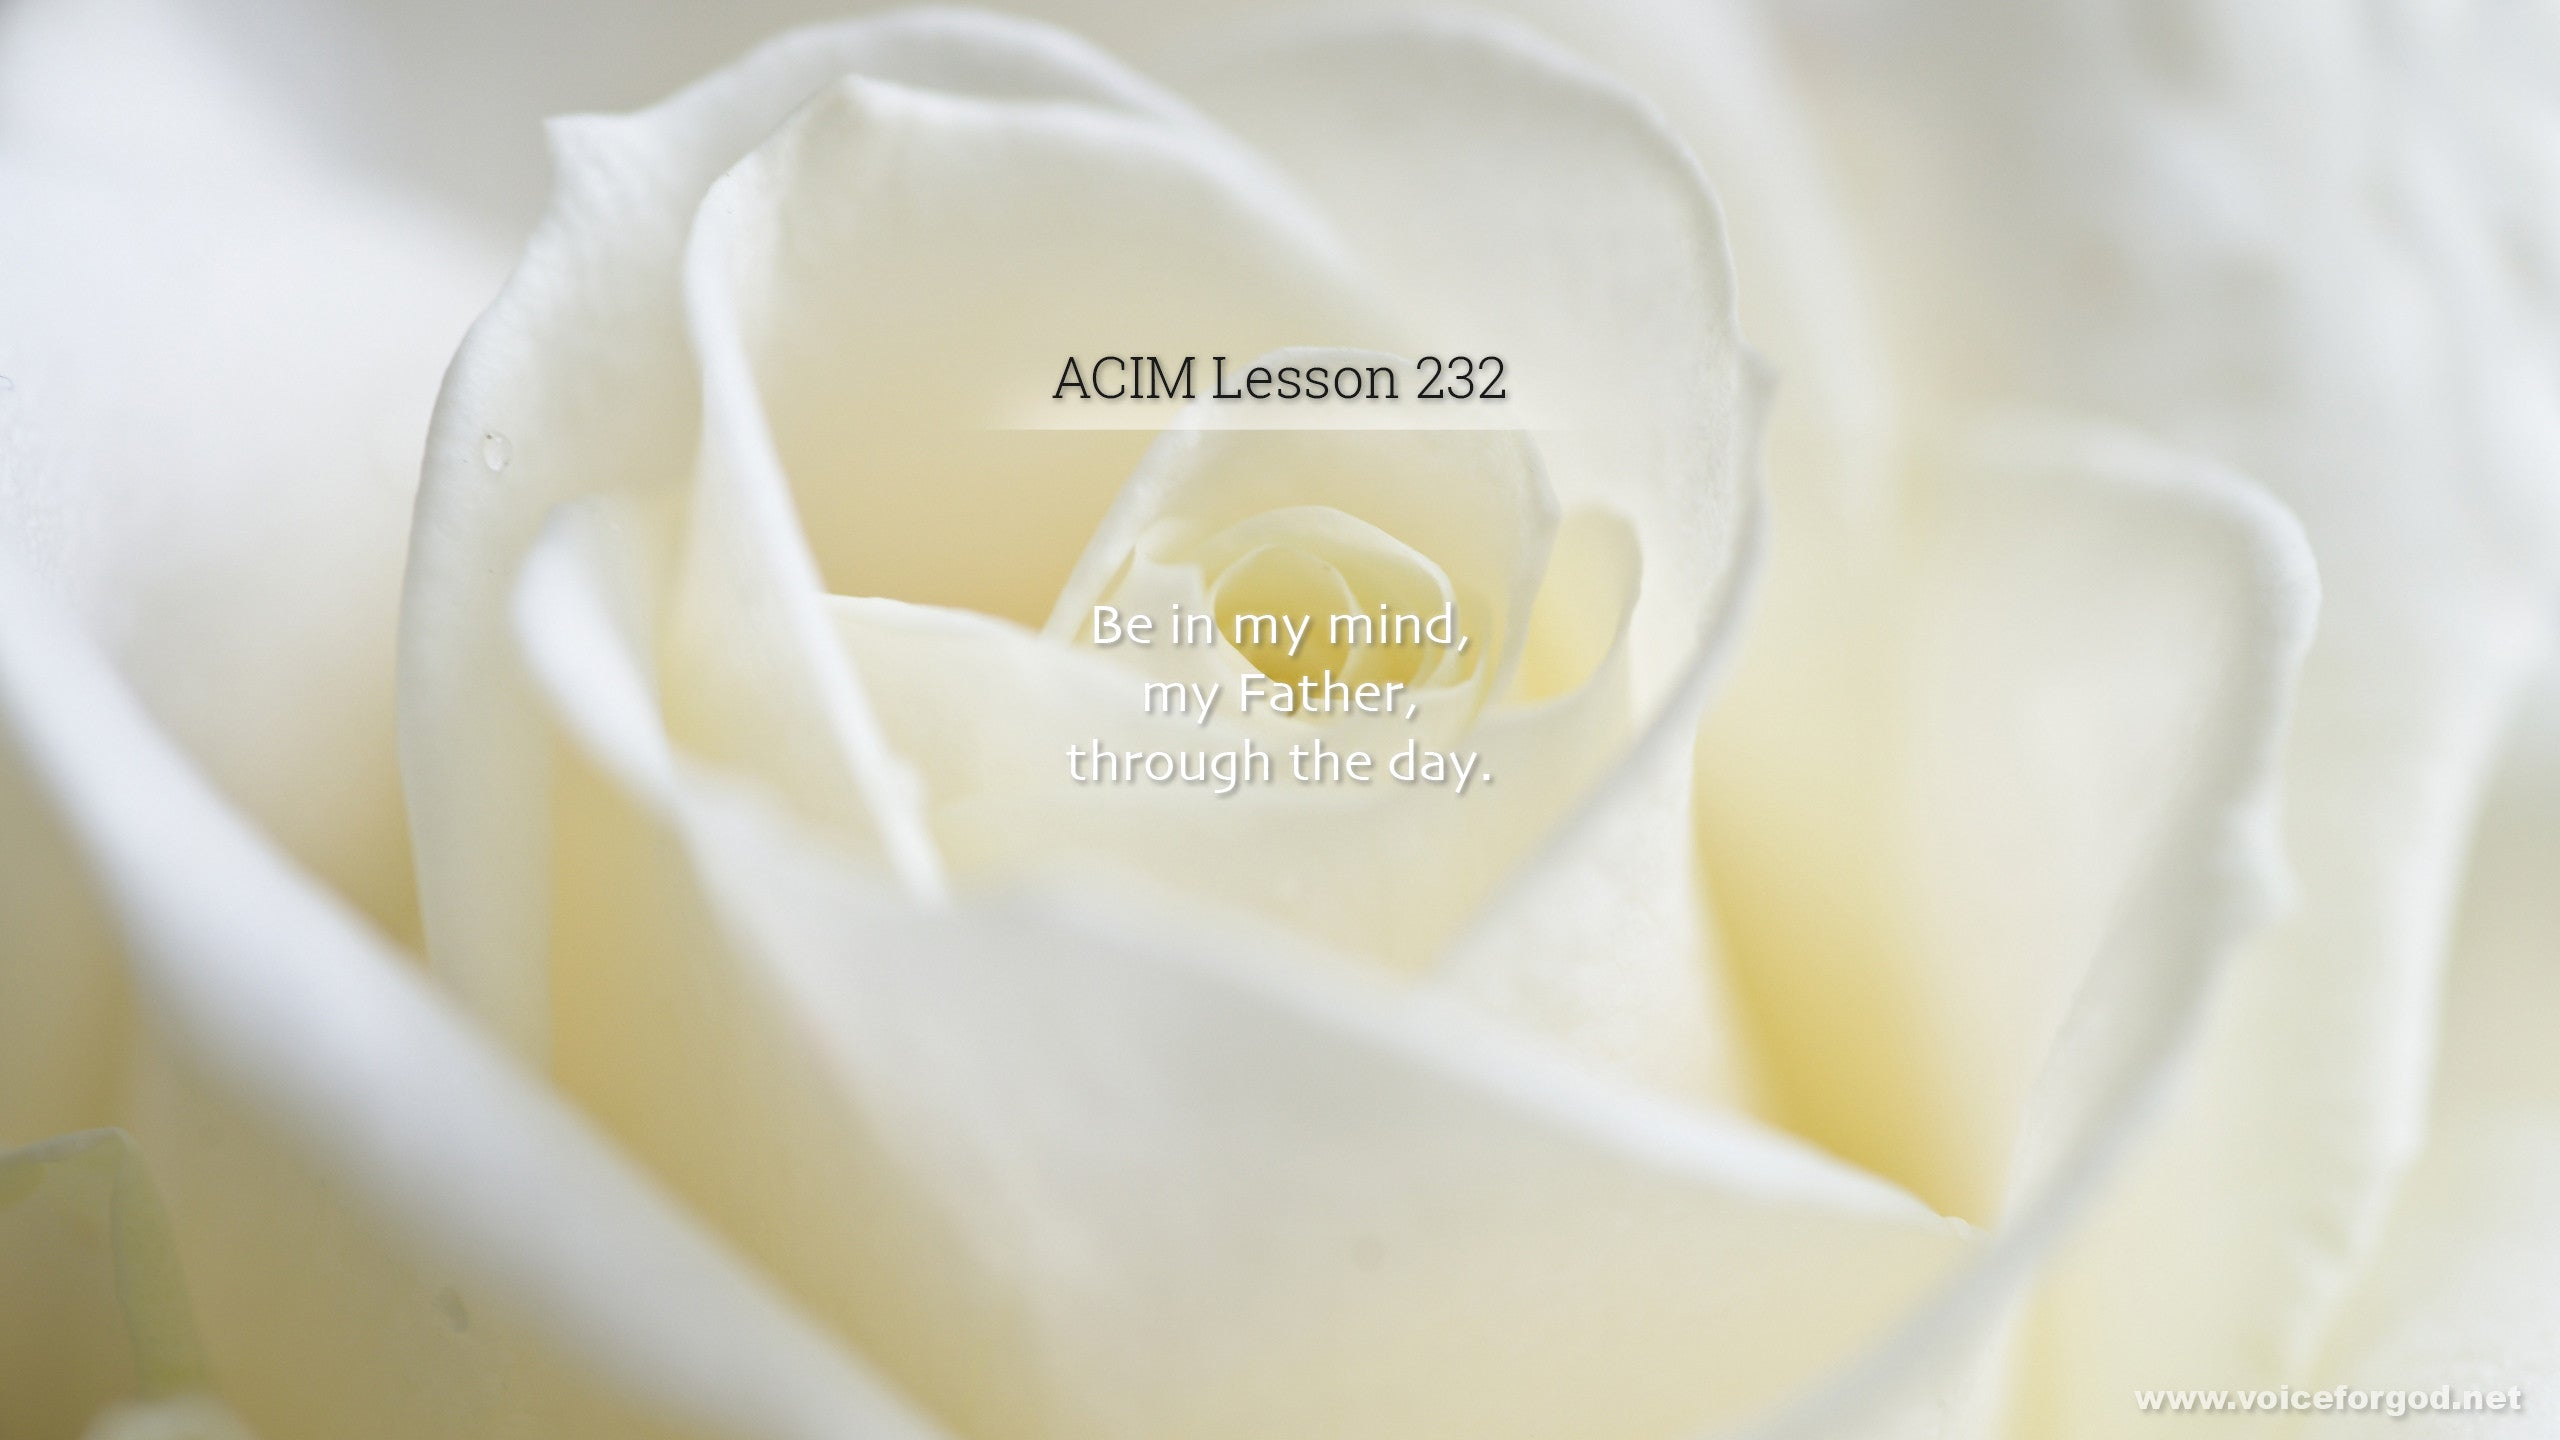 ACIM Lesson 232 - A Course in Miracles Workbook Lesson 232